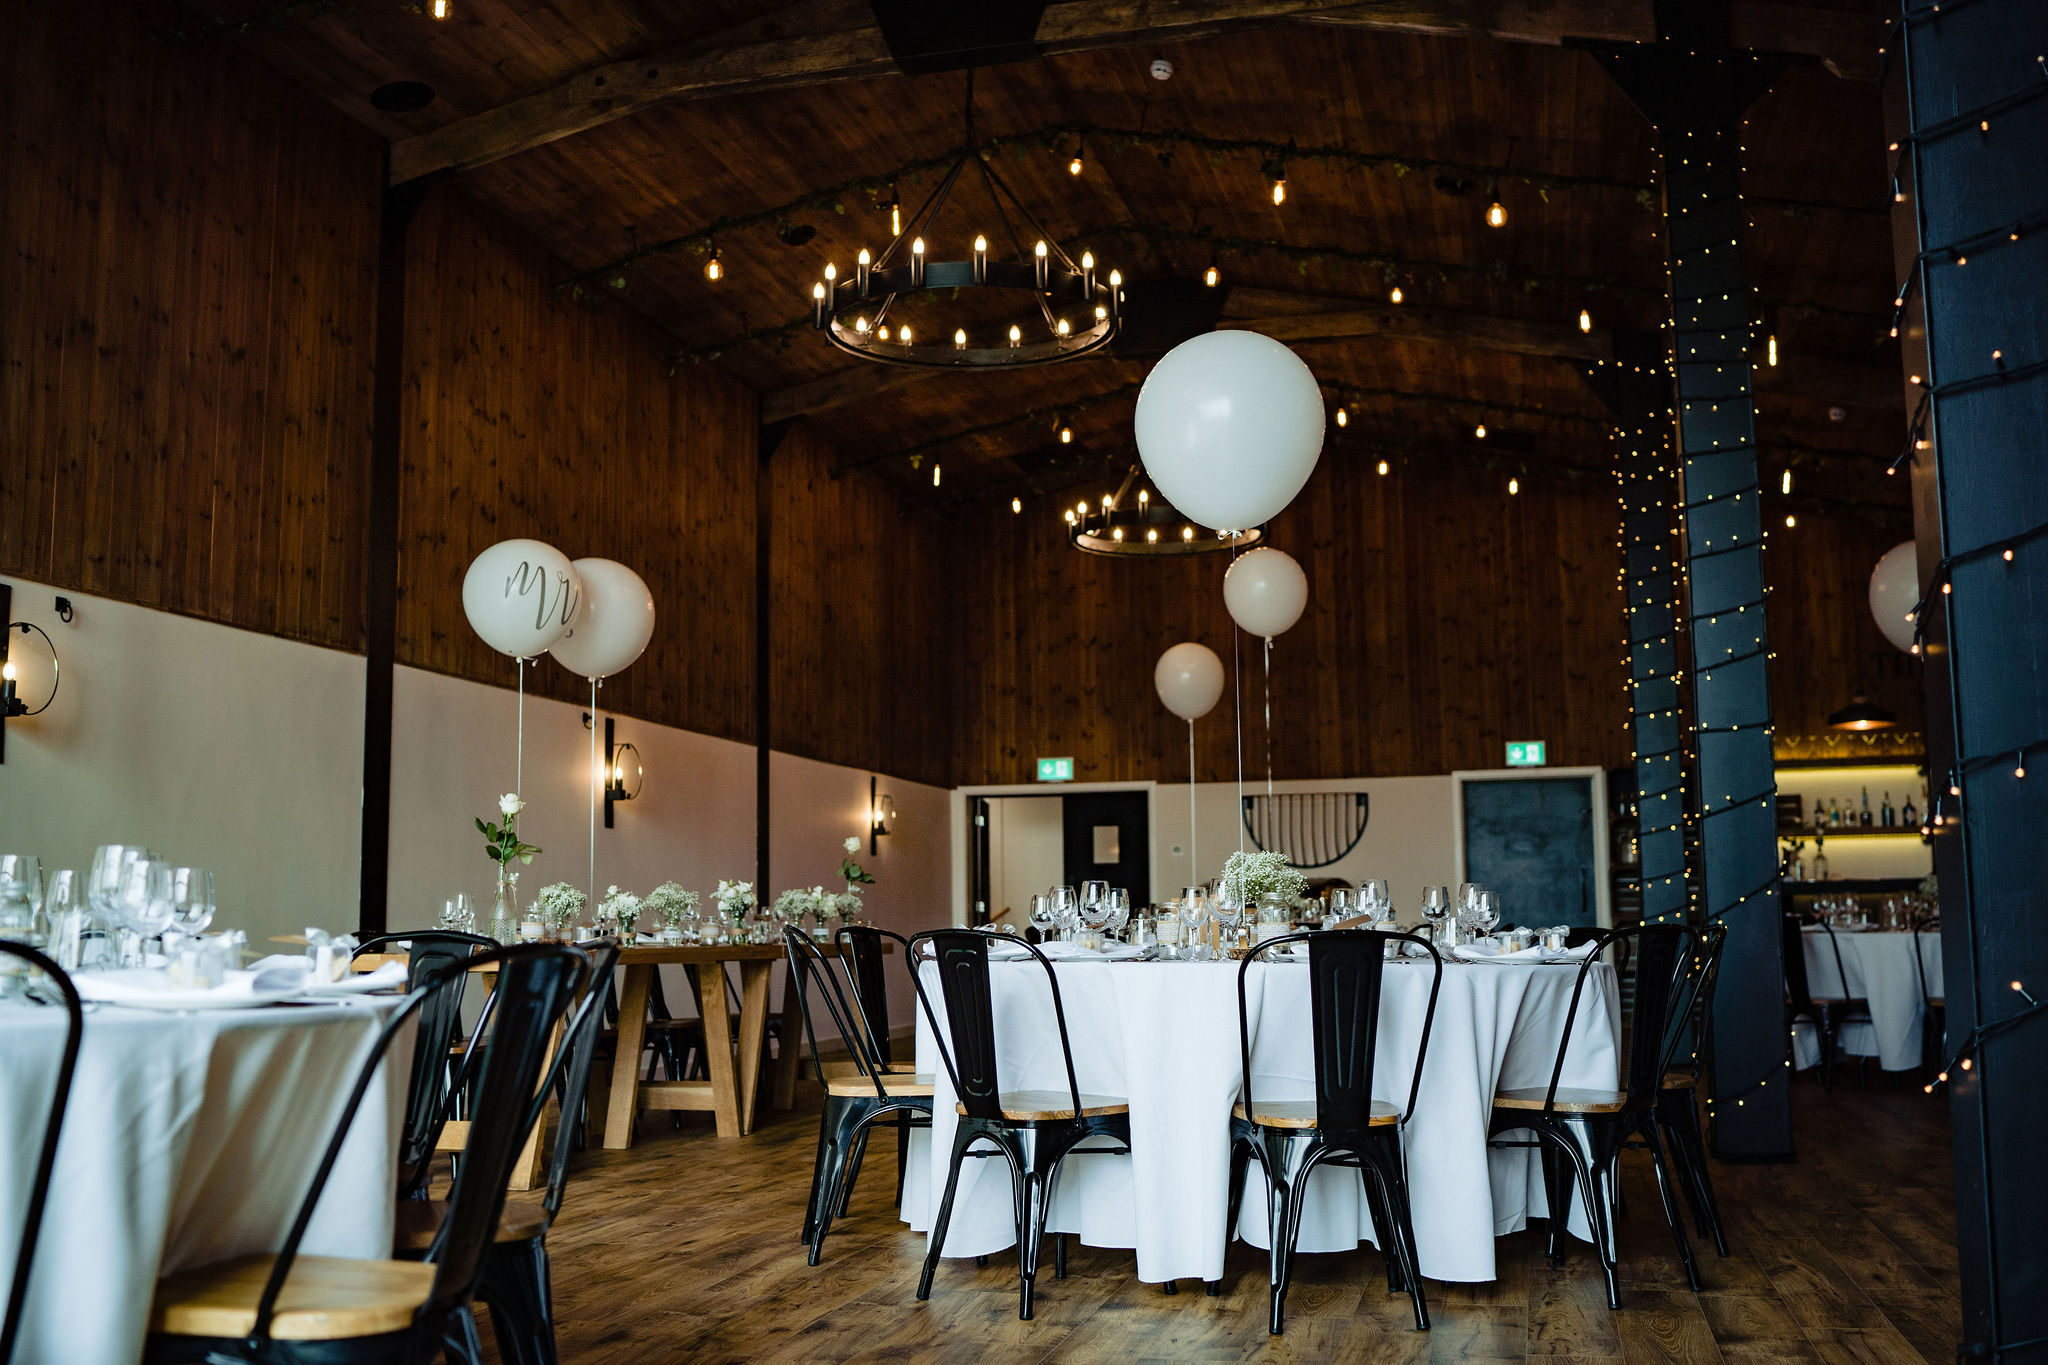 Stable Barn at Upton Barn & Walled Grden dressed for a Wedding Breakfast with white oversized balloons